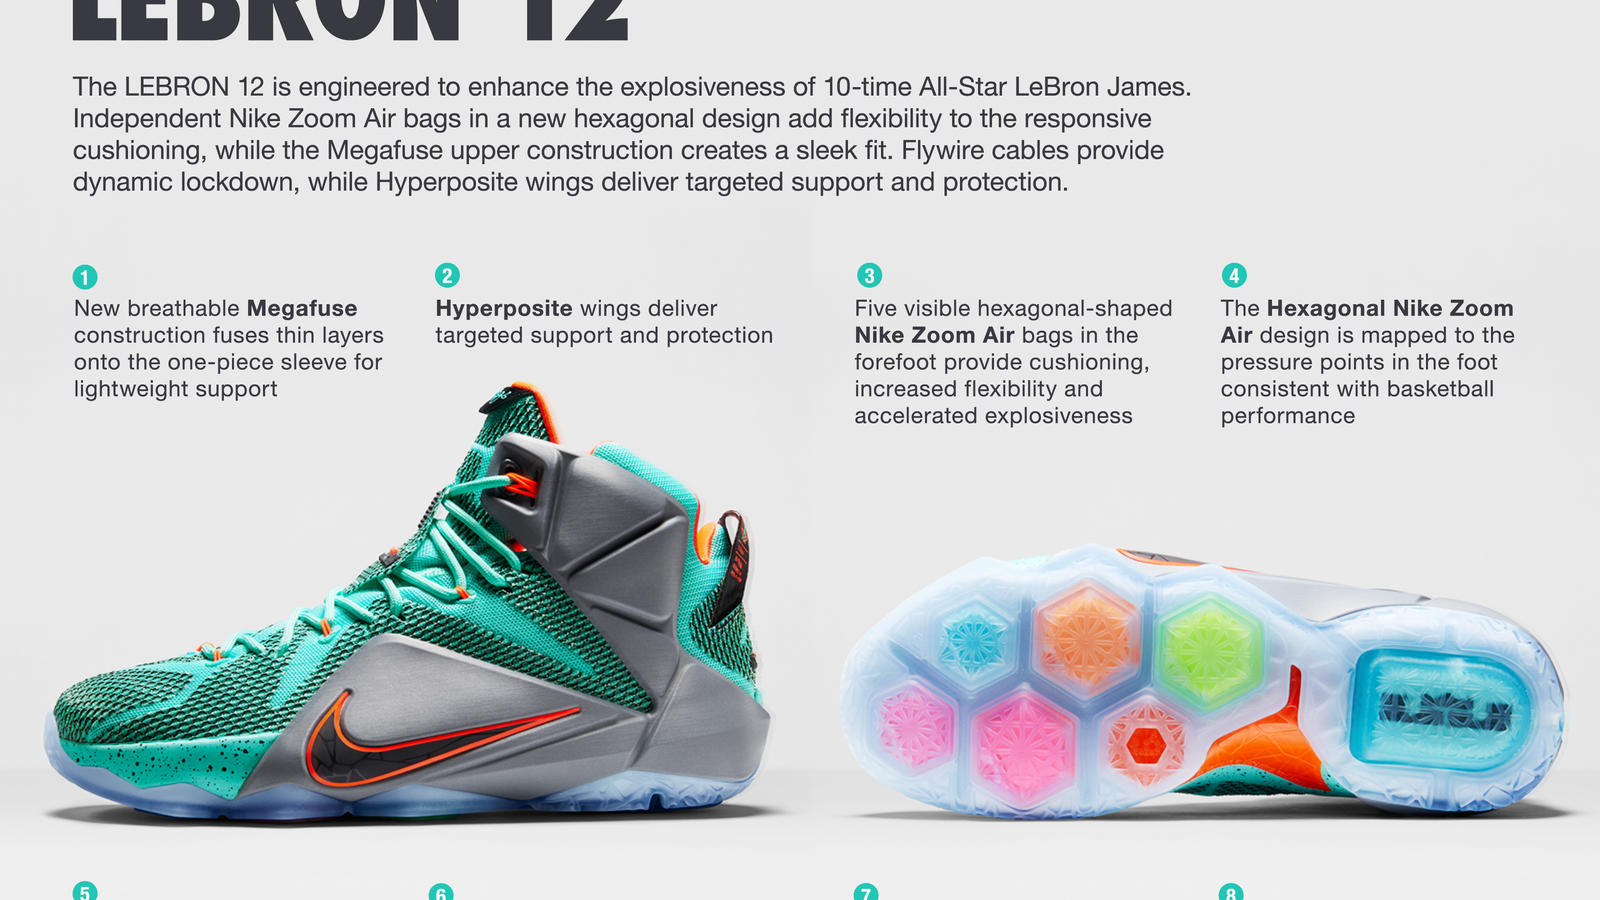 Explosiveness Nike Nike for LEBRON 12Engineered News DHIW2E9Y